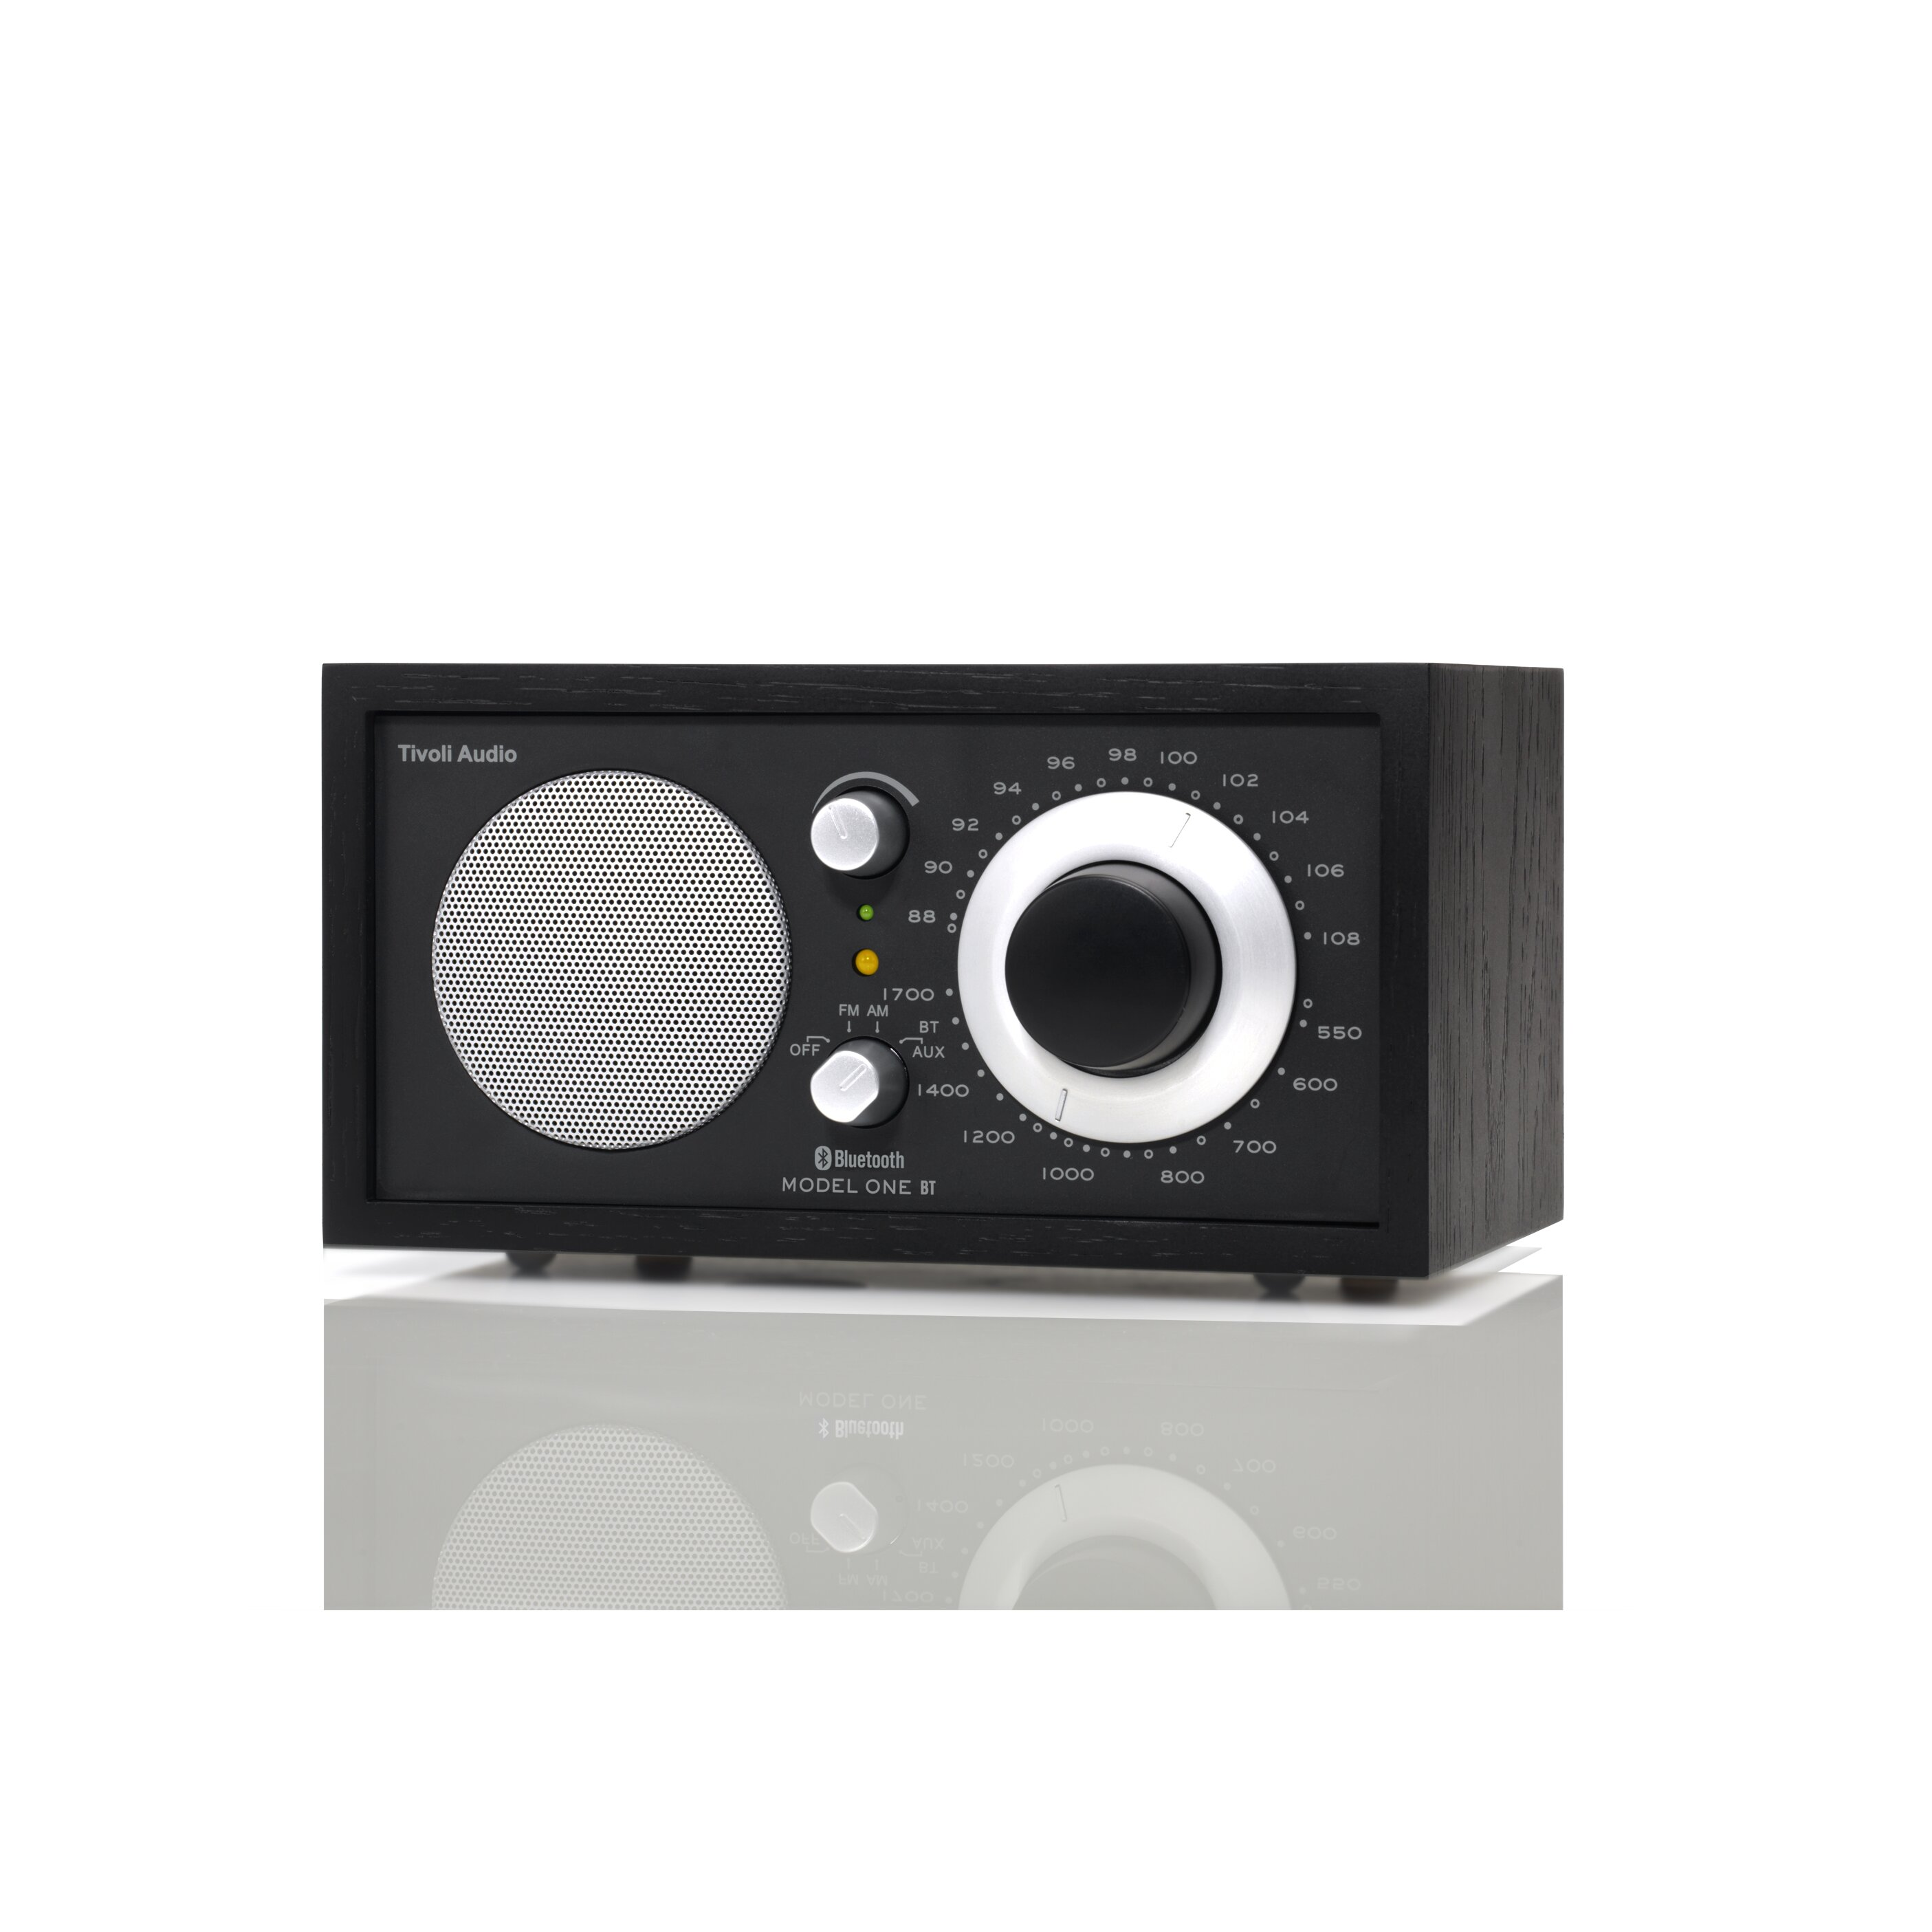 tivoli audio llc model one bluetooth am fm table radio. Black Bedroom Furniture Sets. Home Design Ideas